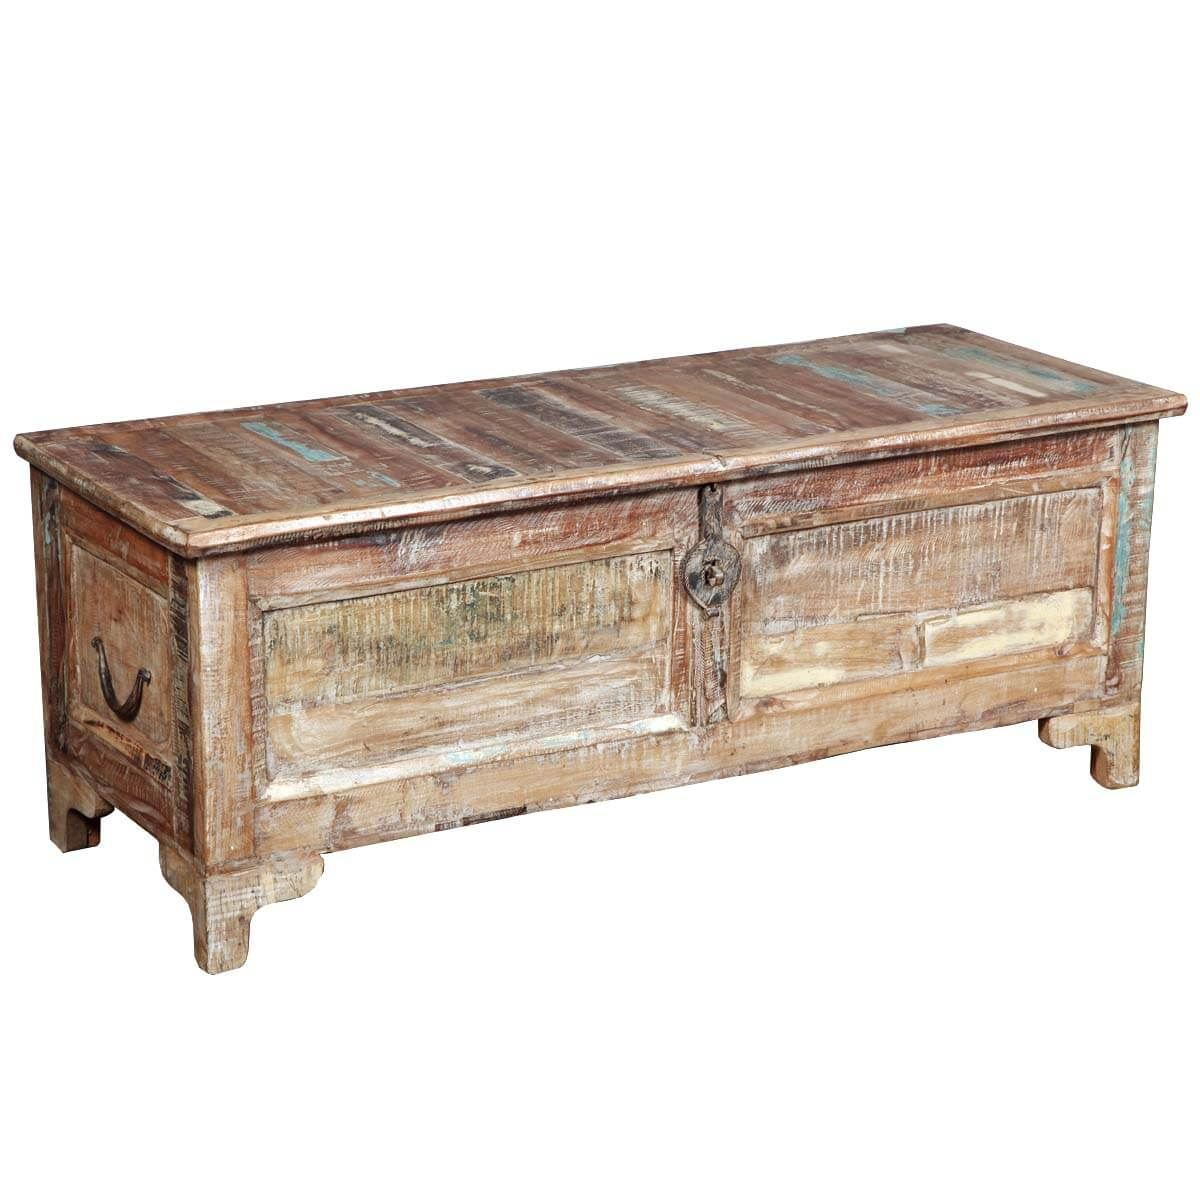 Rustic reclaimed wood storage coffee table chest Coffee table chest with storage